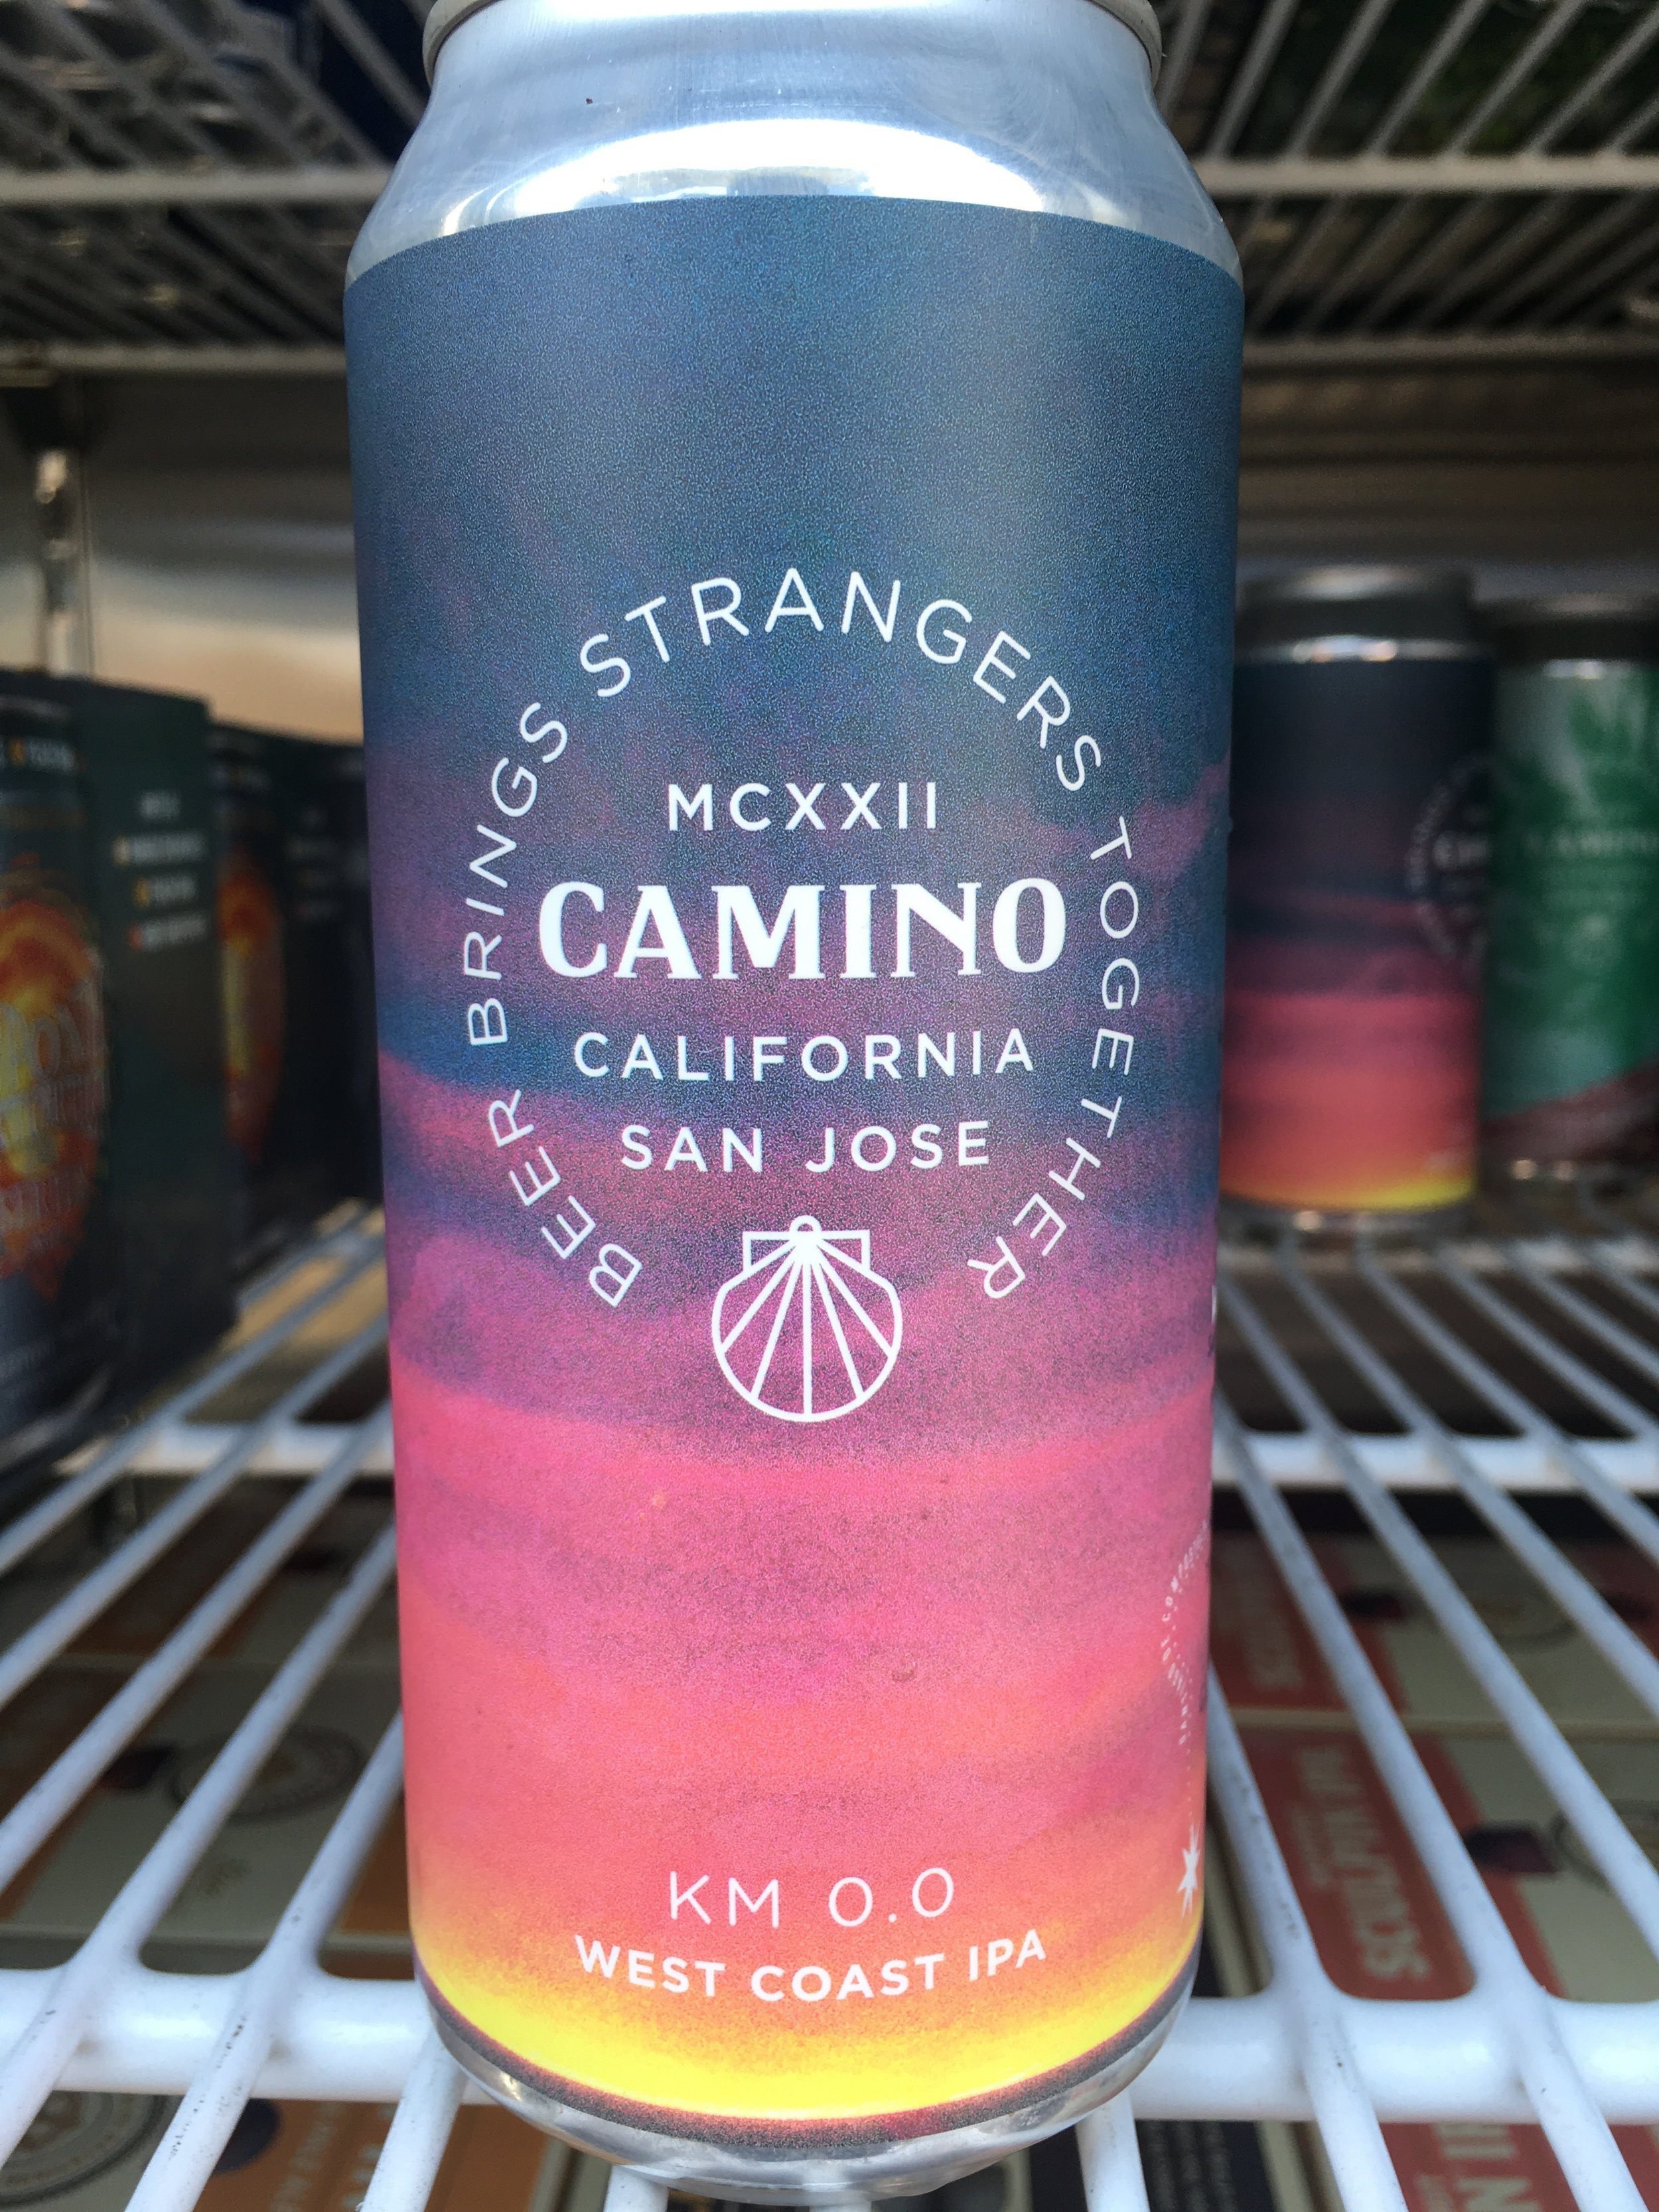 Camino Brewing - KM 0.0 West Coast IPA